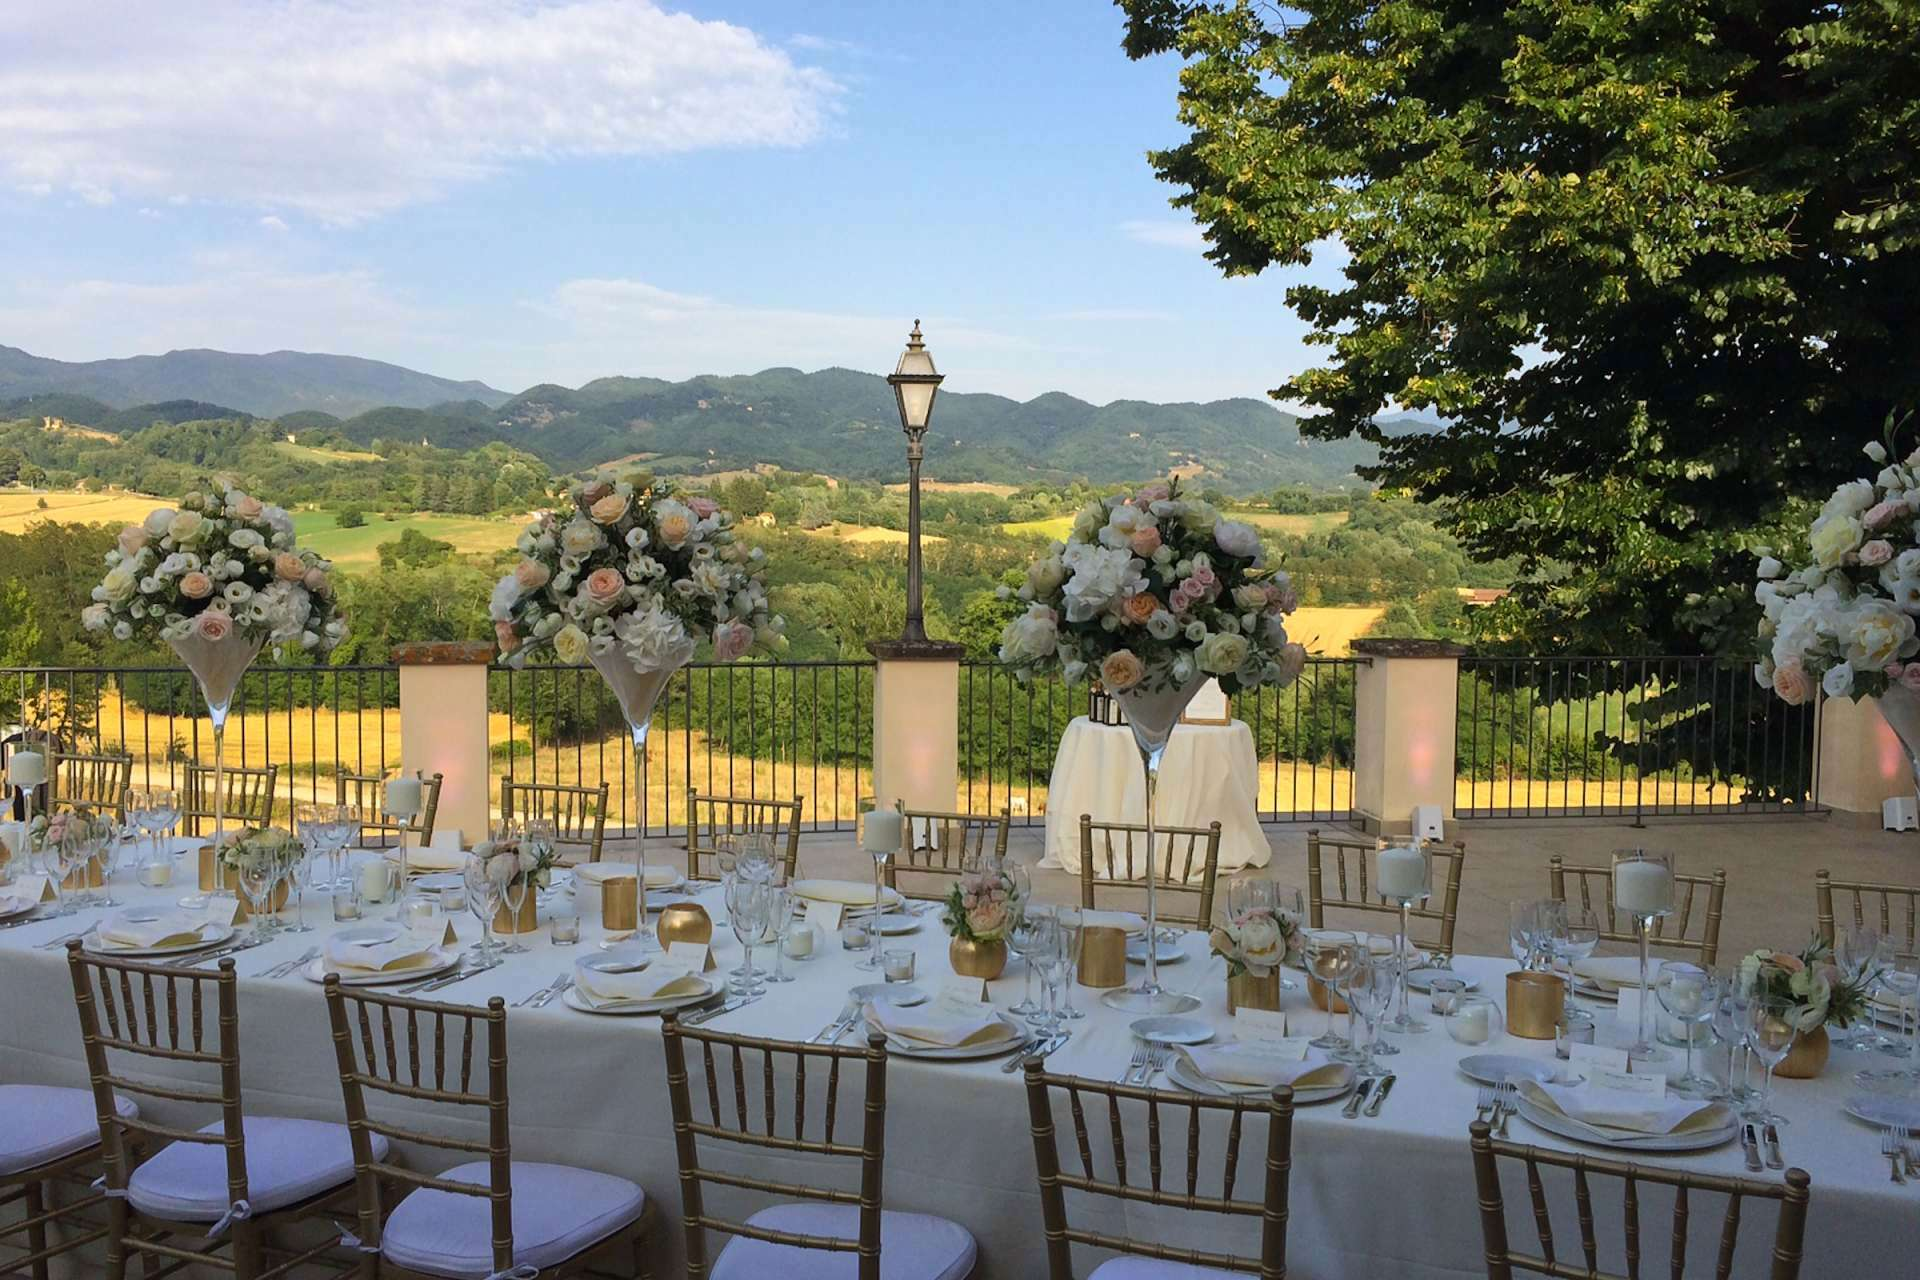 Weddings in Tuscany: 5 Beautiful Villas for the Perfect Celebration